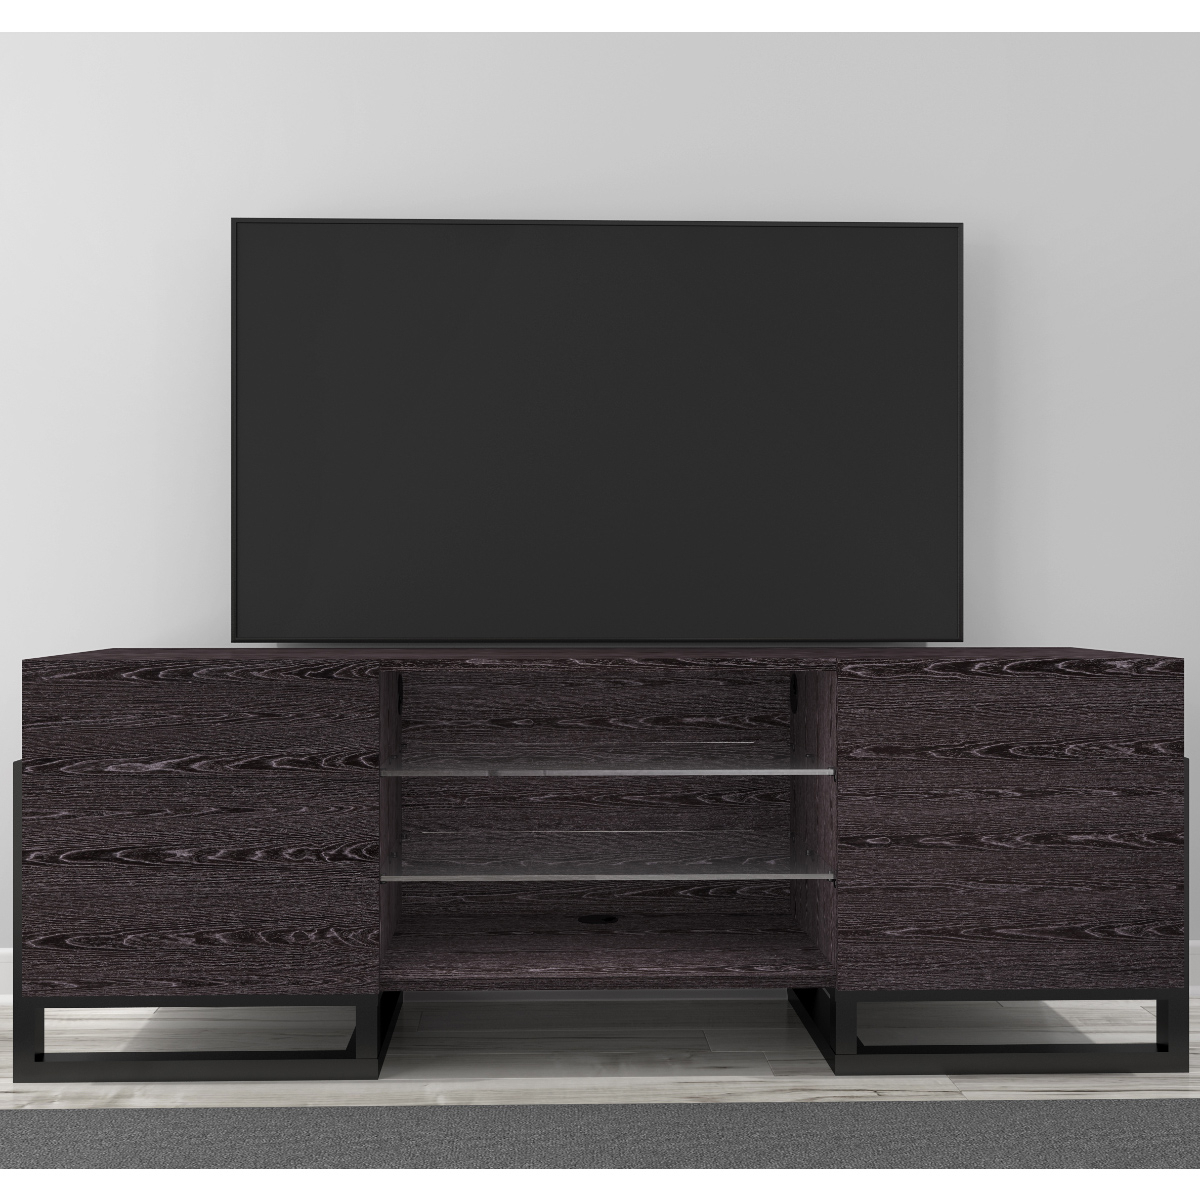 Awesome Selection Of Tv Stands (View 15 of 30)